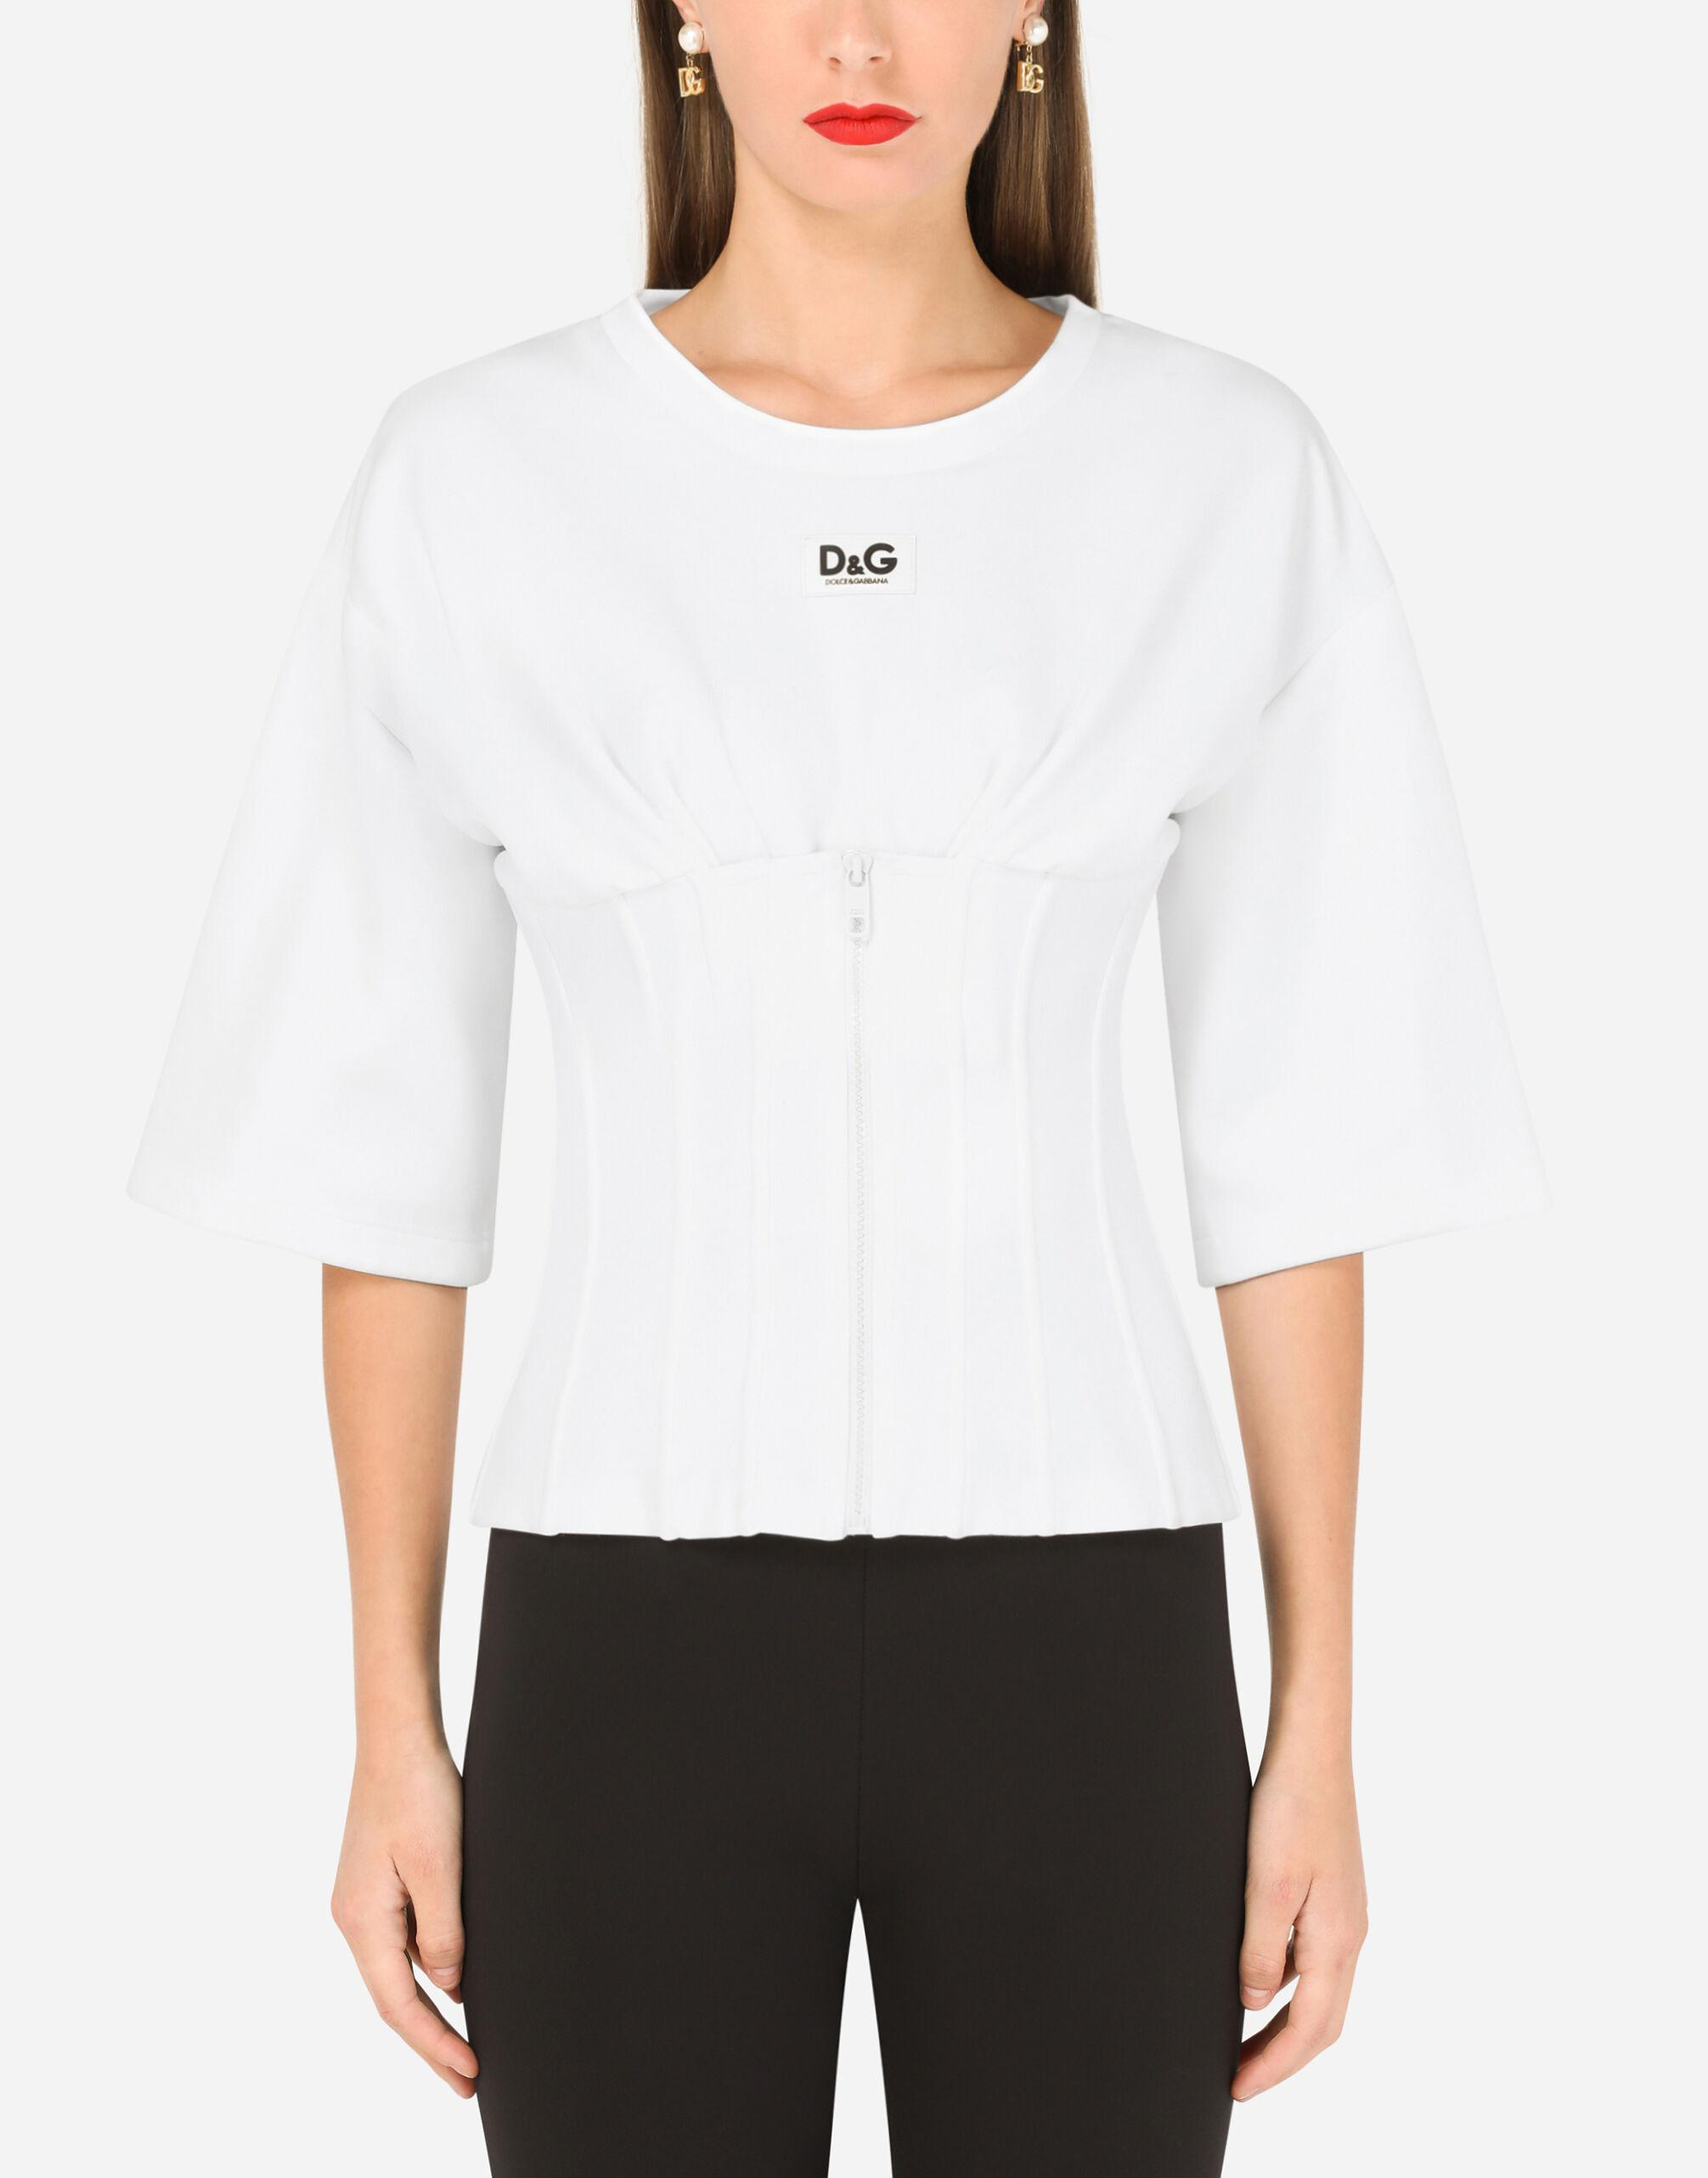 Jersey T-shirt with bustier details and DG embellishment